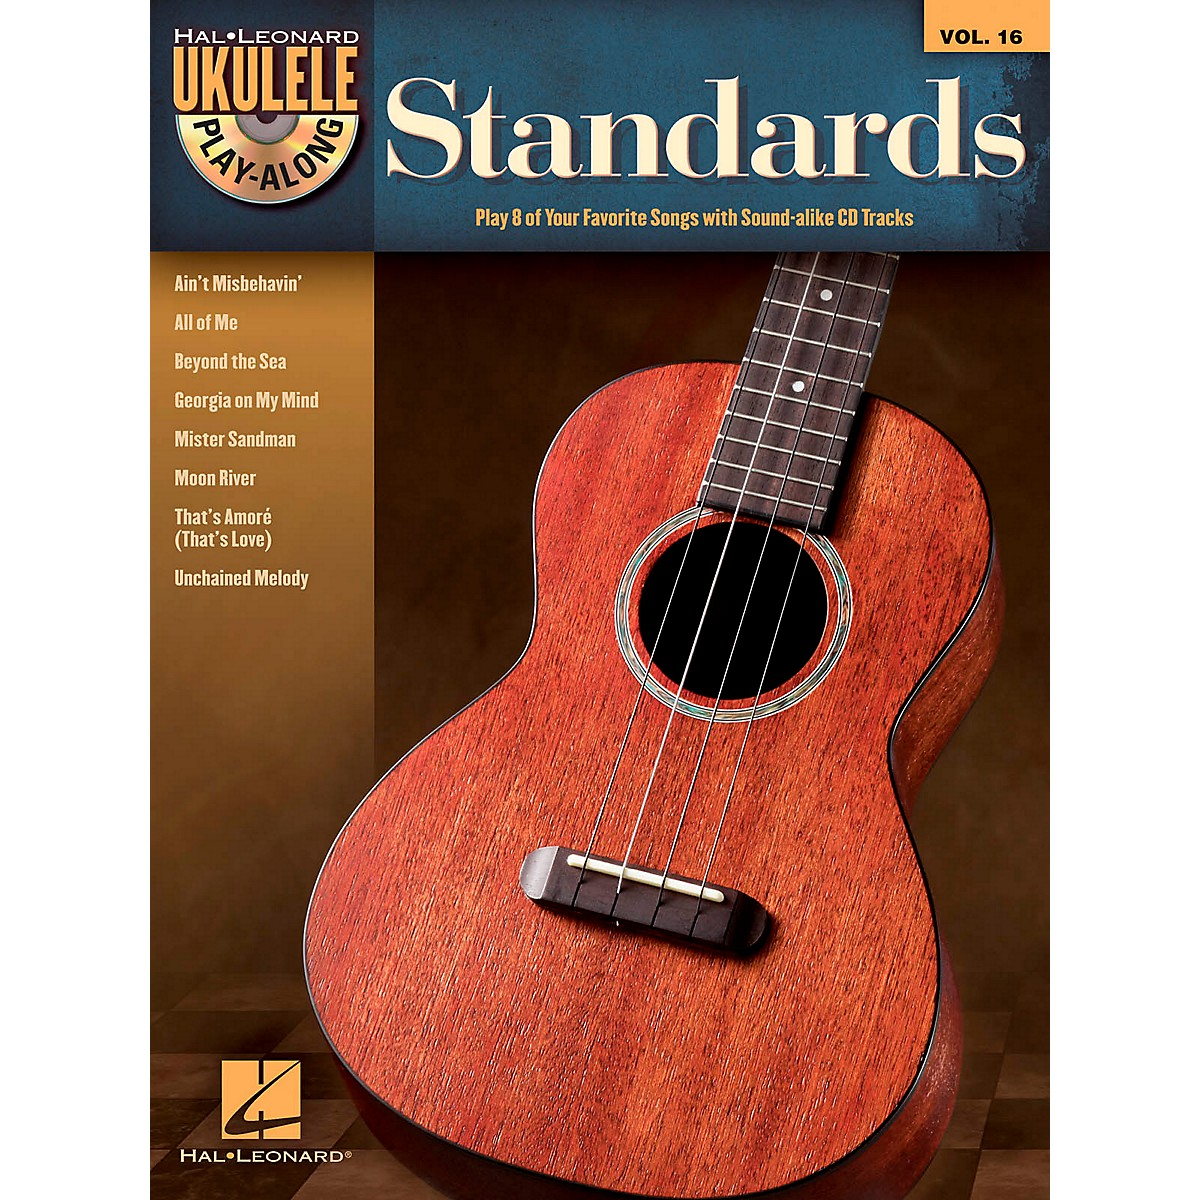 Hal Leonard Standards - Ukulele Play-Along Vol. 16 Book/CD